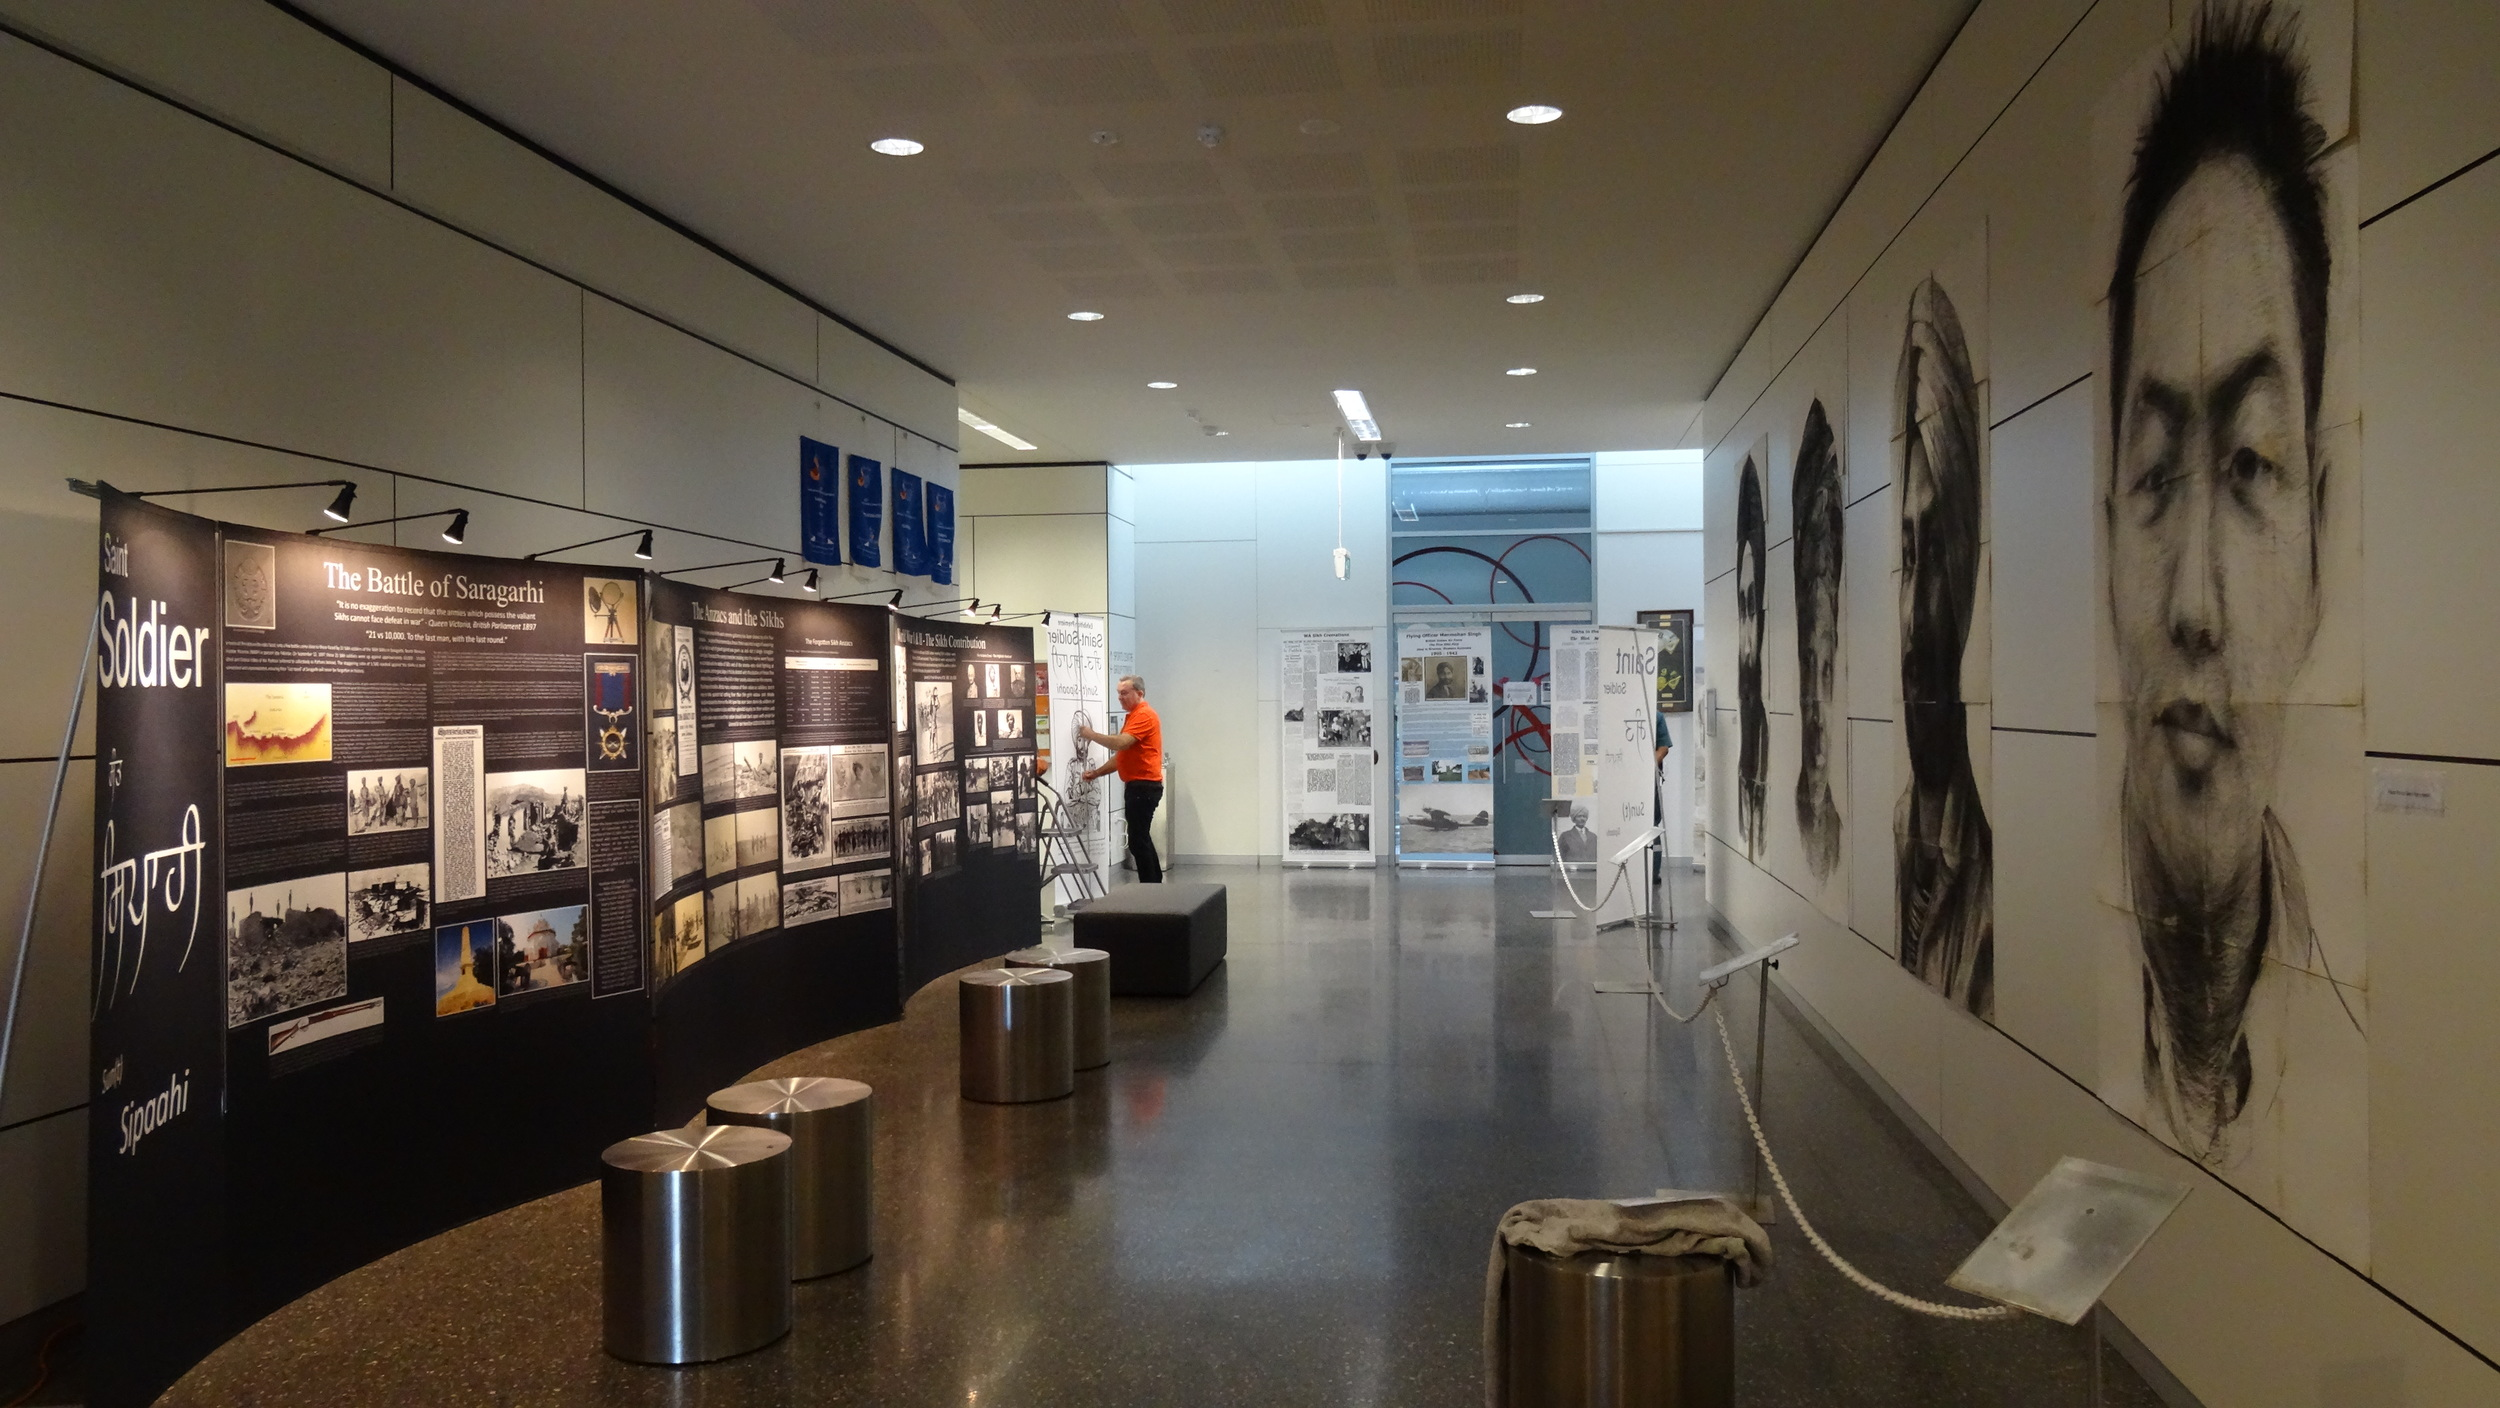 Australian Sikh Heritage Exhibition (left) and Daniel Connell's Exhibition (right)